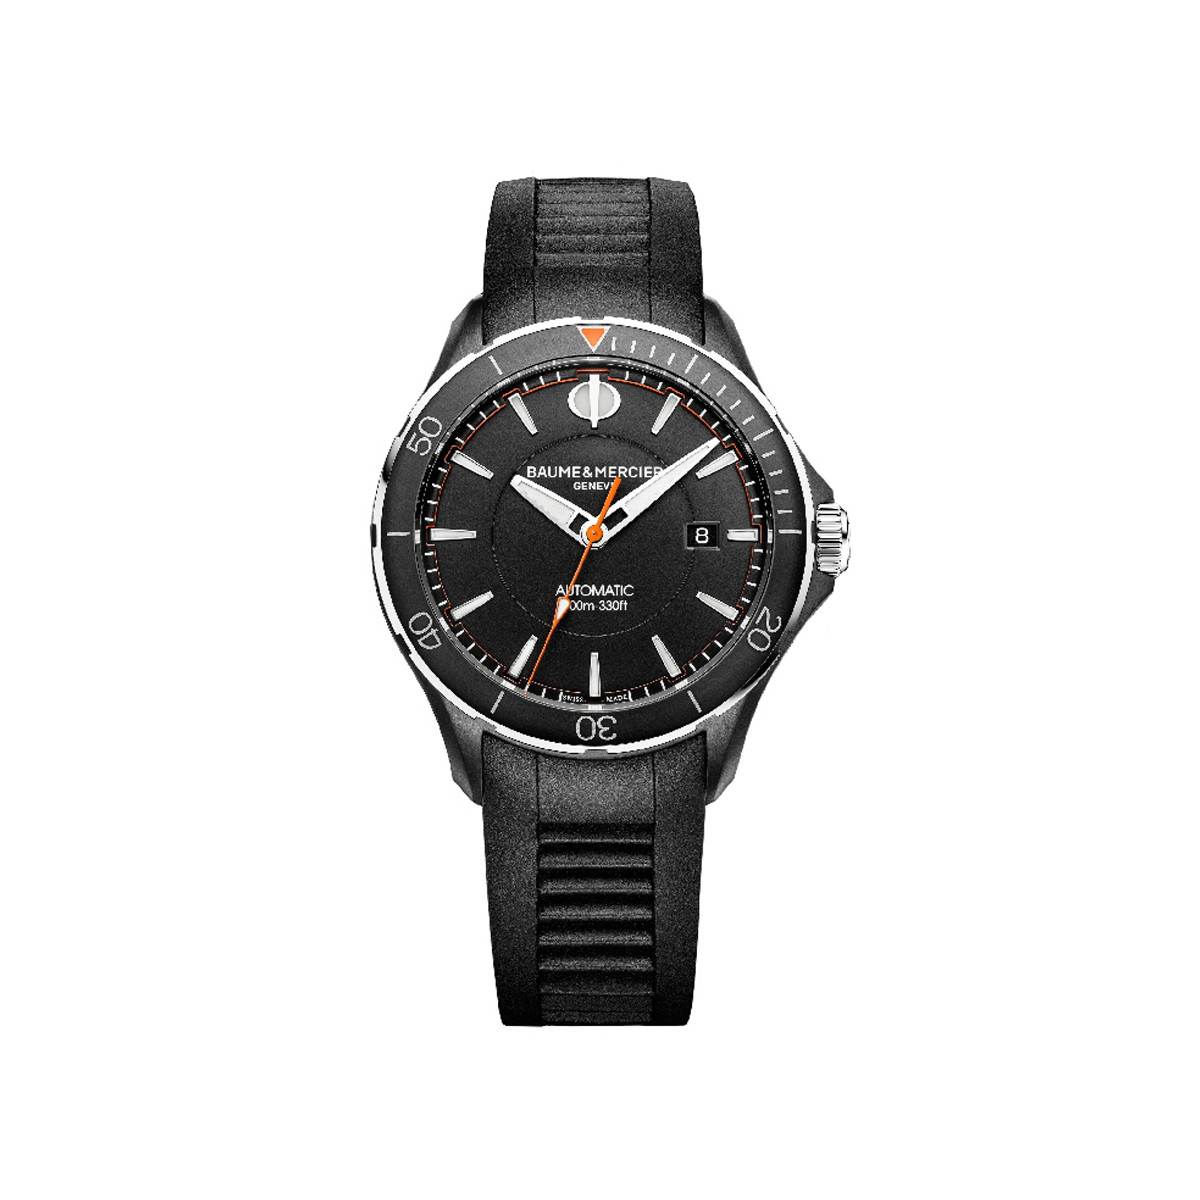 BAUME & MERCIER CLIFTON CLUB WATCH